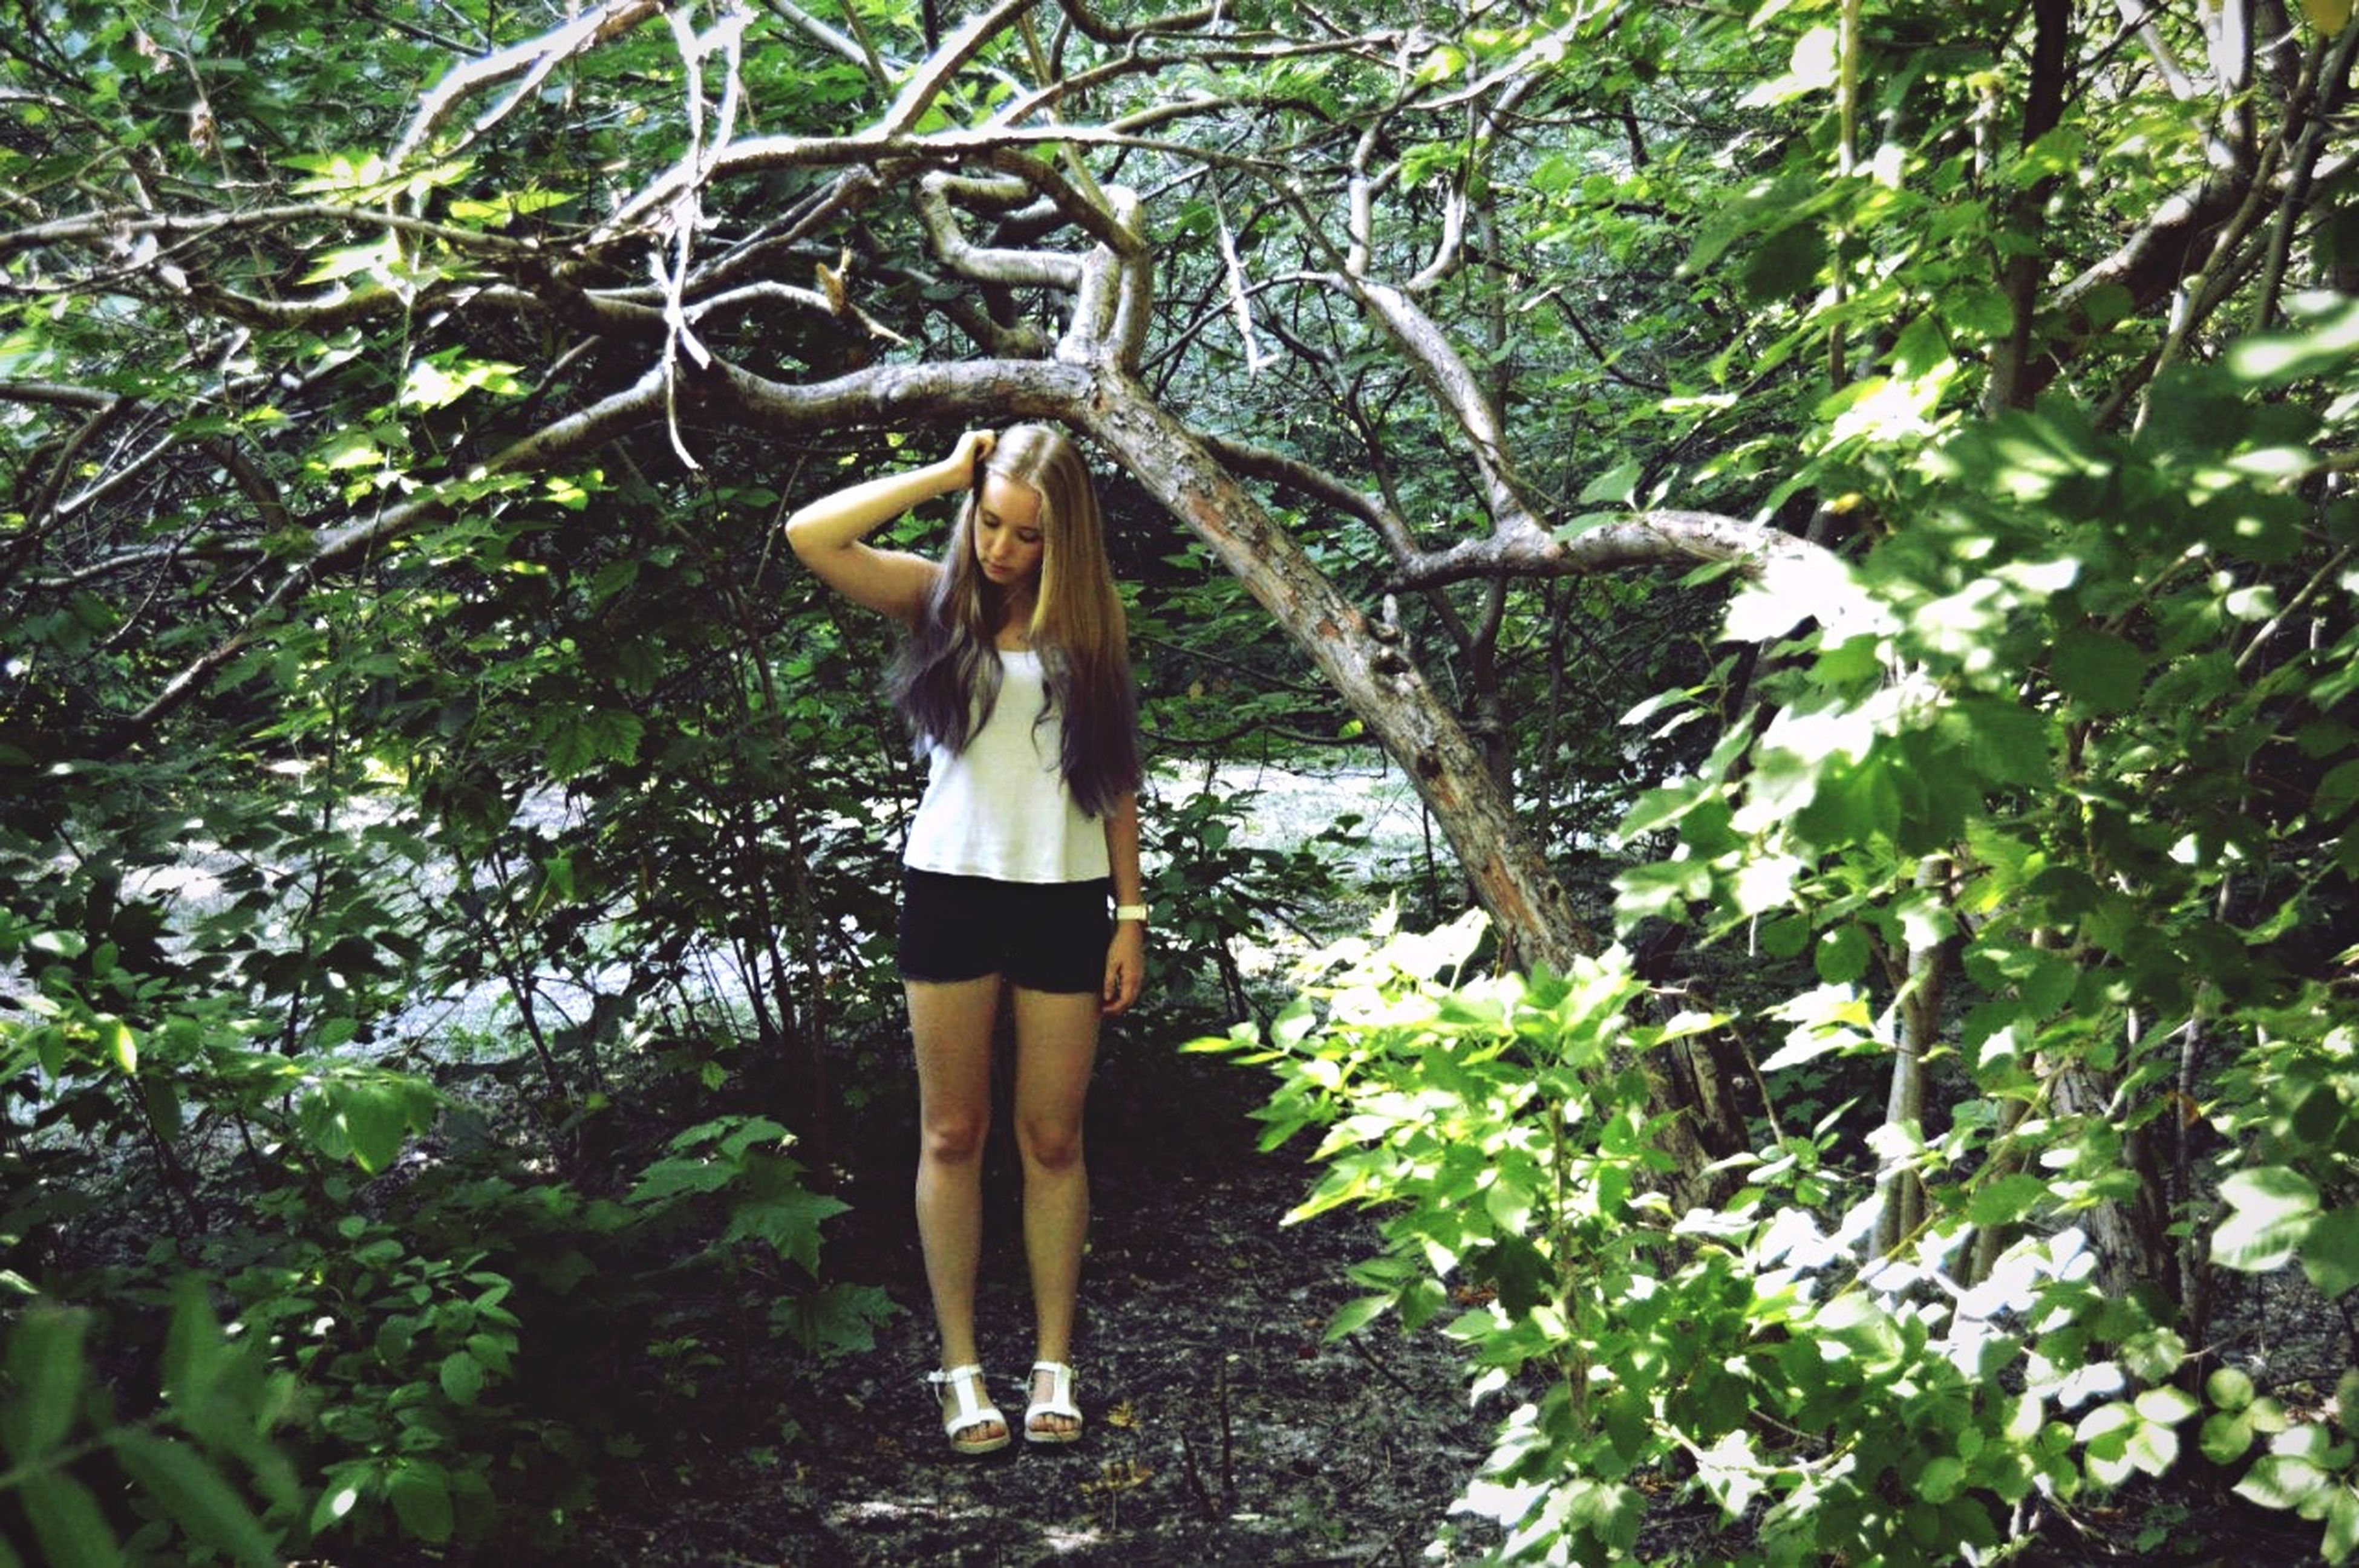 tree, growth, branch, tree trunk, nature, lifestyles, forest, plant, standing, outdoors, full length, leisure activity, casual clothing, day, hanging, rear view, leaf, person